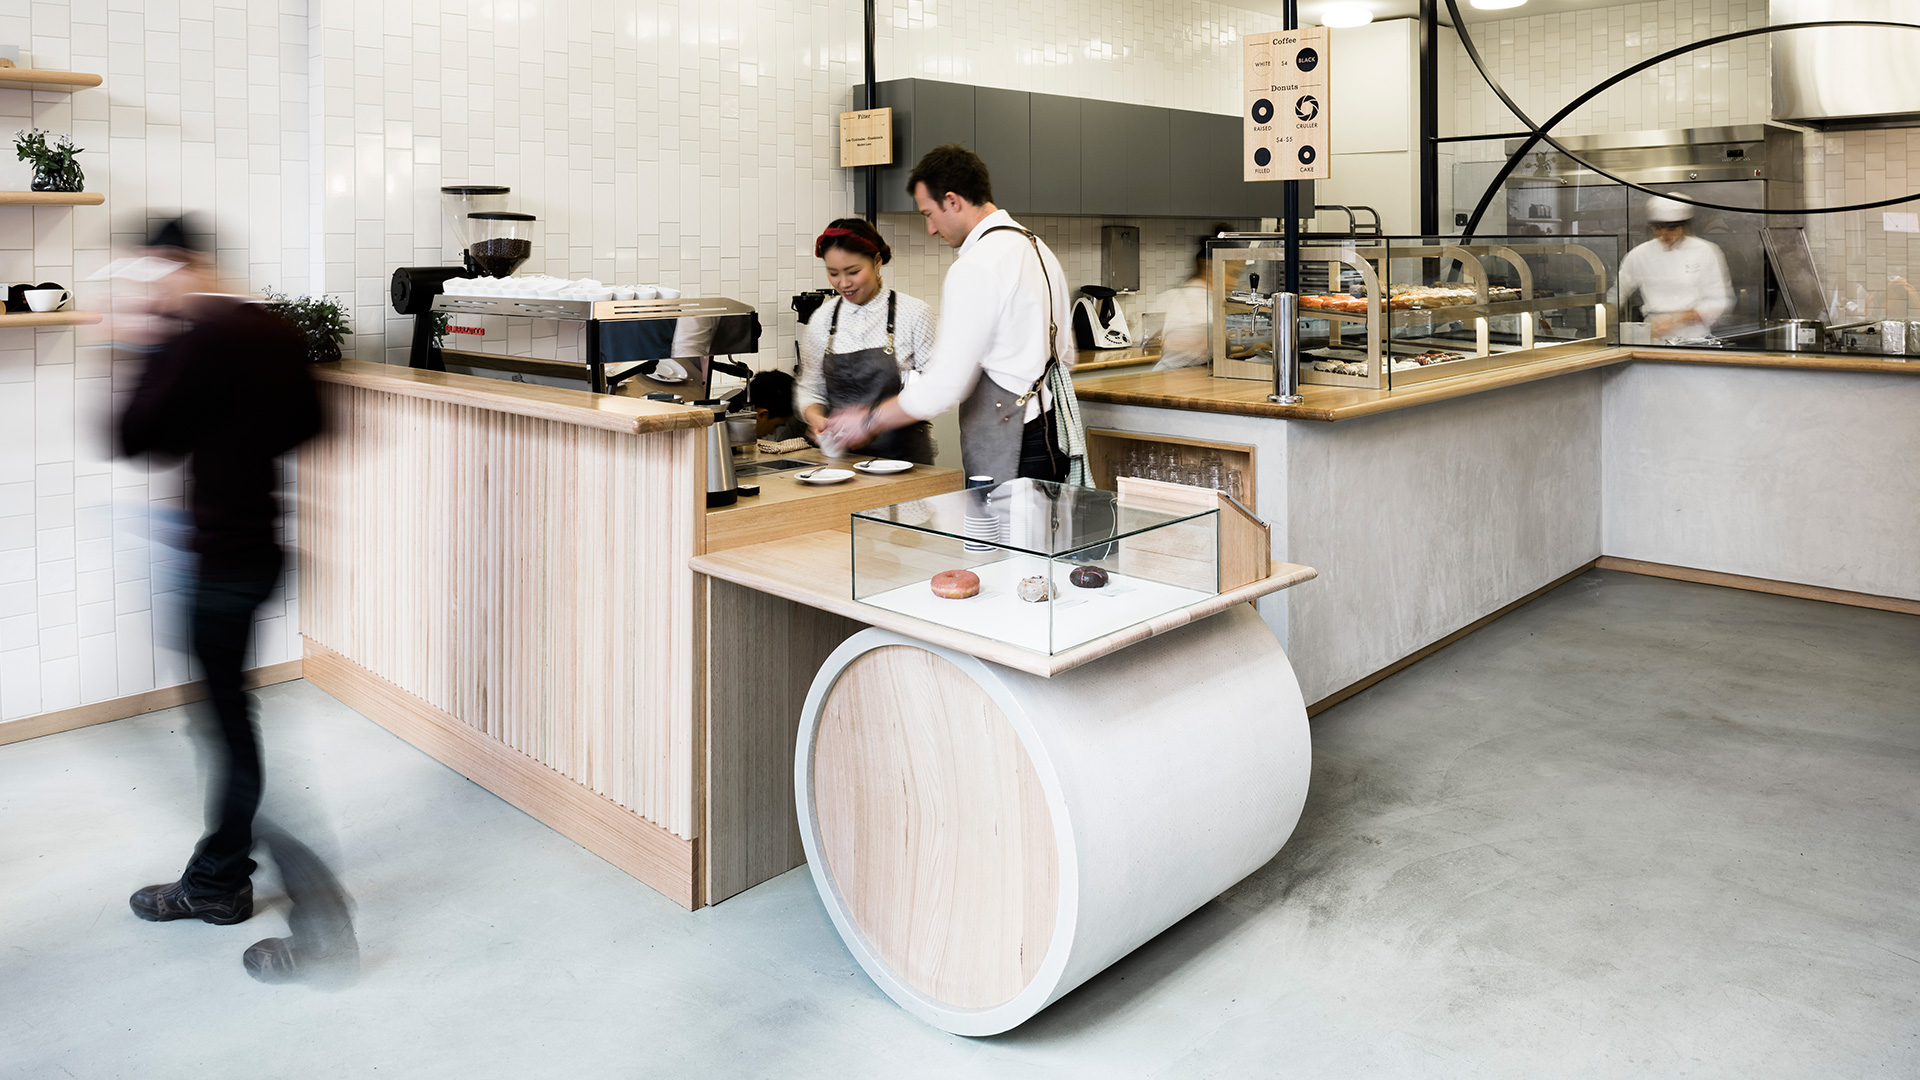 Shortstop Coffee and Donuts  in Melbourne - refined POS design to match the aesthetic as well as provide functionality by  Foolscap Studio  - image credit  Tom Blachford